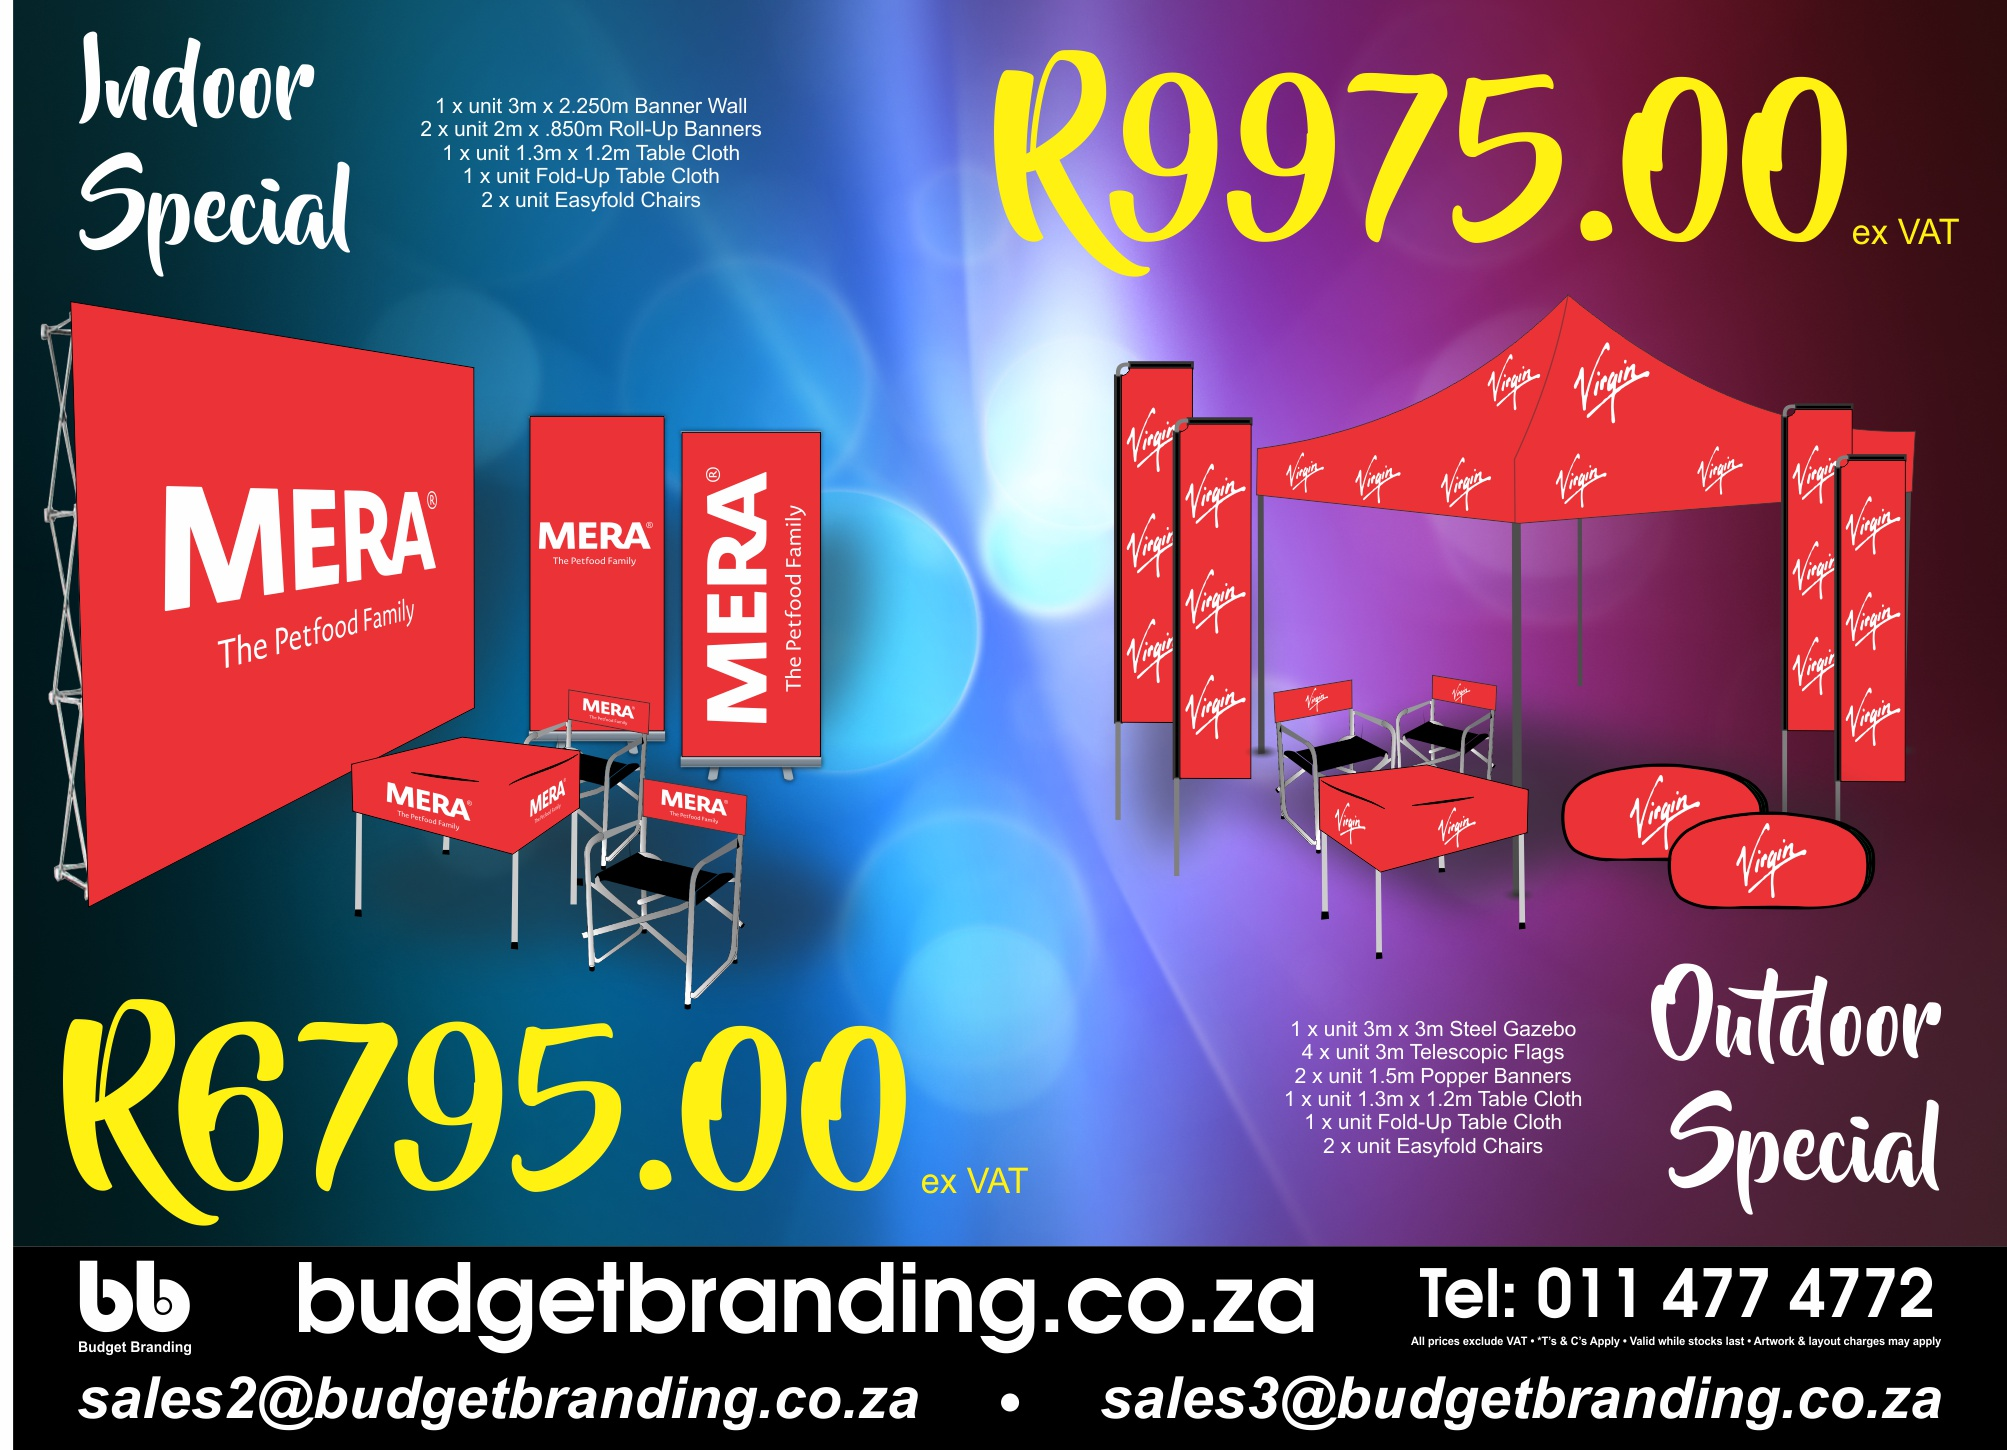 The Budget Branding!! Old school special